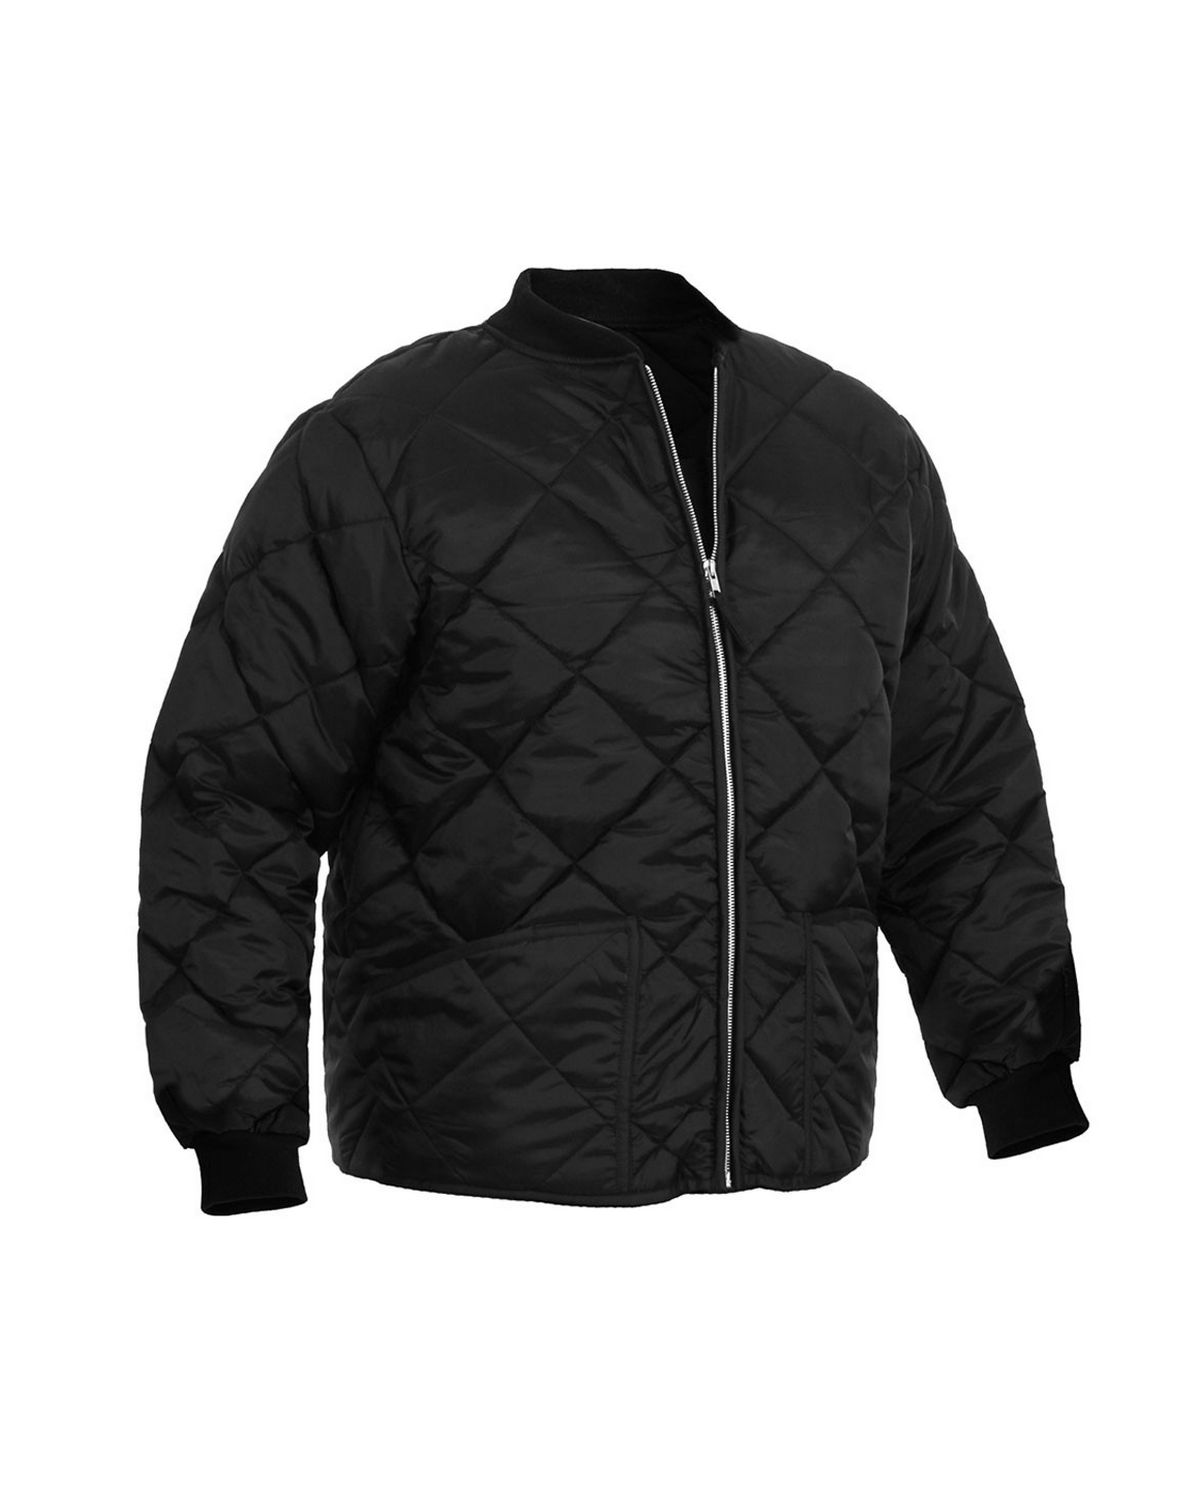 Rothco 7160 Diamond Nylon Quilted Flight Jacket Free